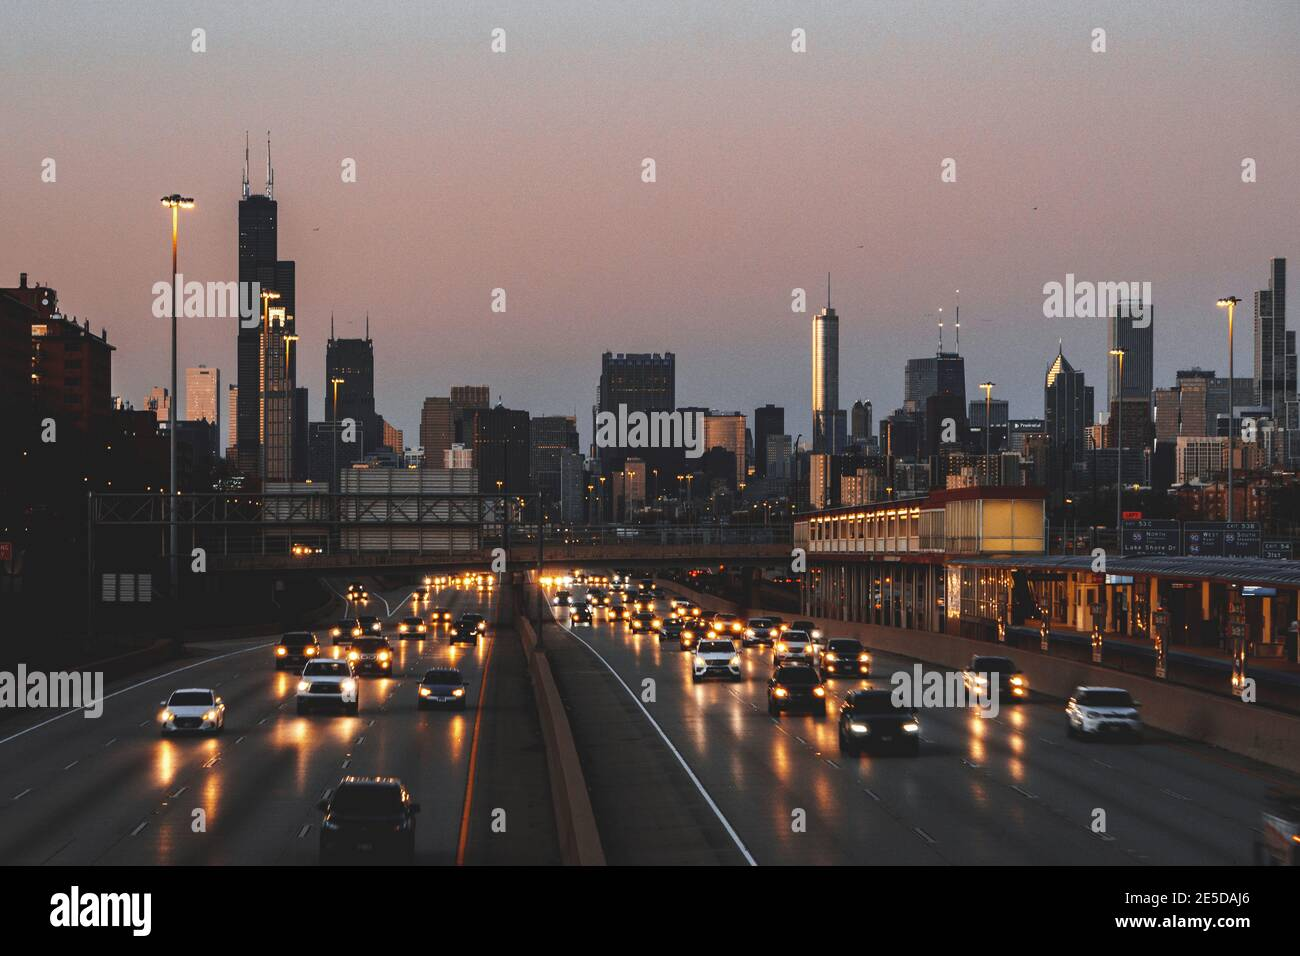 City skyline and cars driving along freeway at sunset, Chicago, Illinois, USA Stock Photo